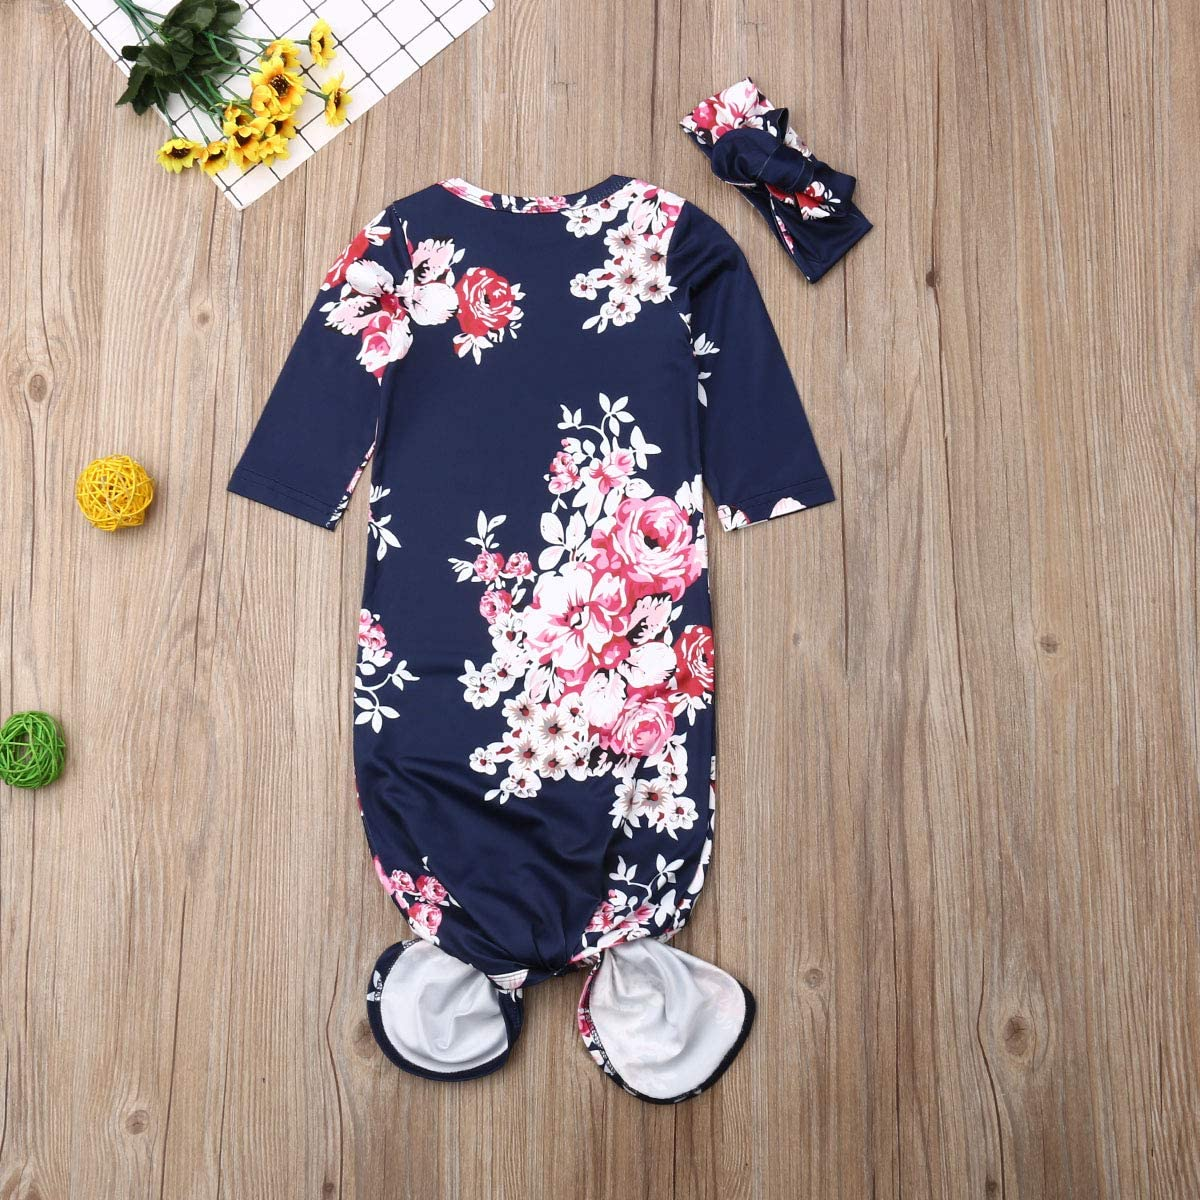 Newborn Baby Girls Floral Sleepwear Gown Cotton Swaddle Wrap Knotted SleepingBags with Headband